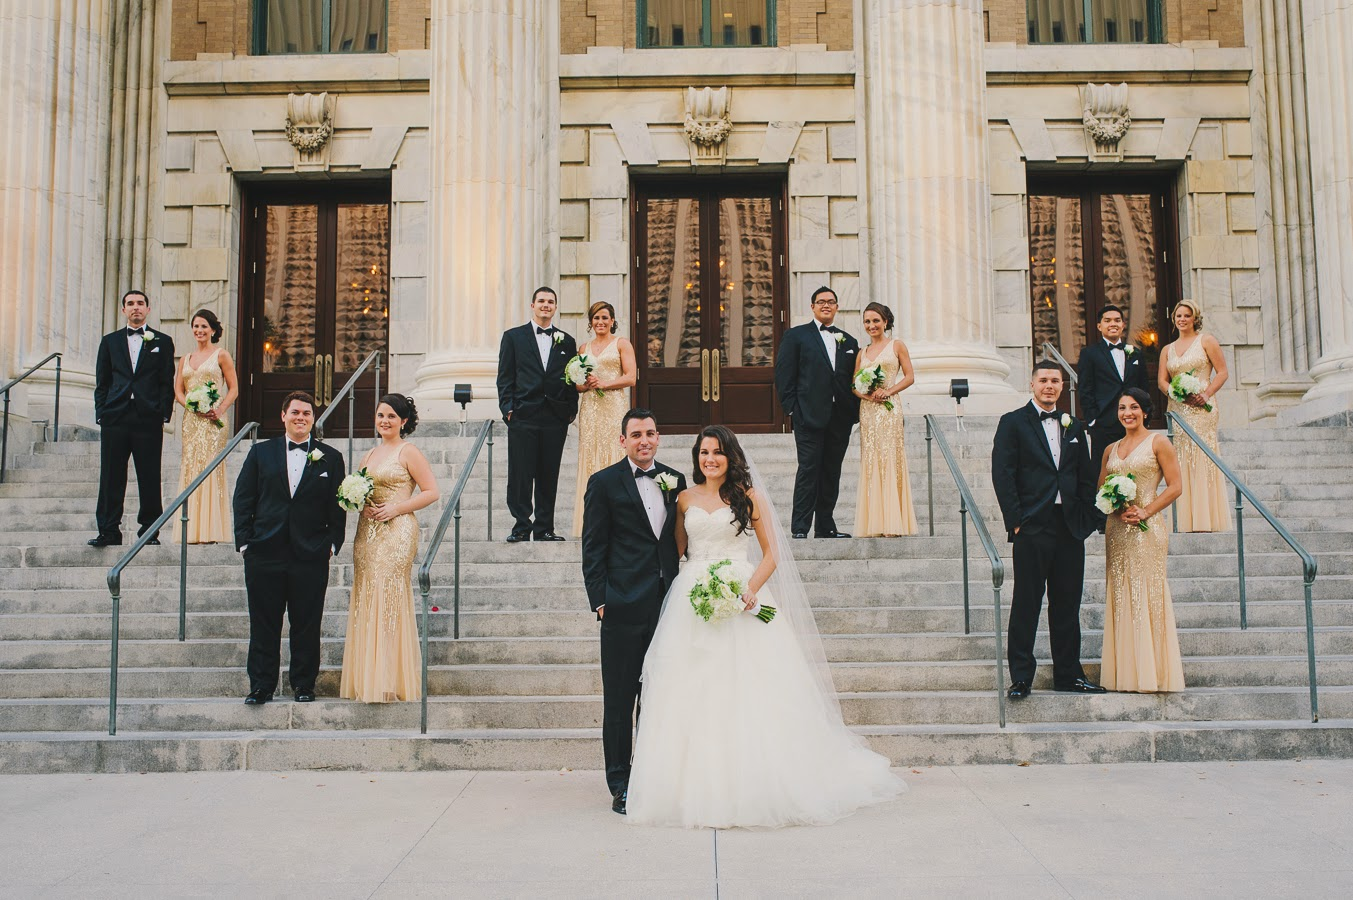 Fabulously Vintage: Our Wedding Day